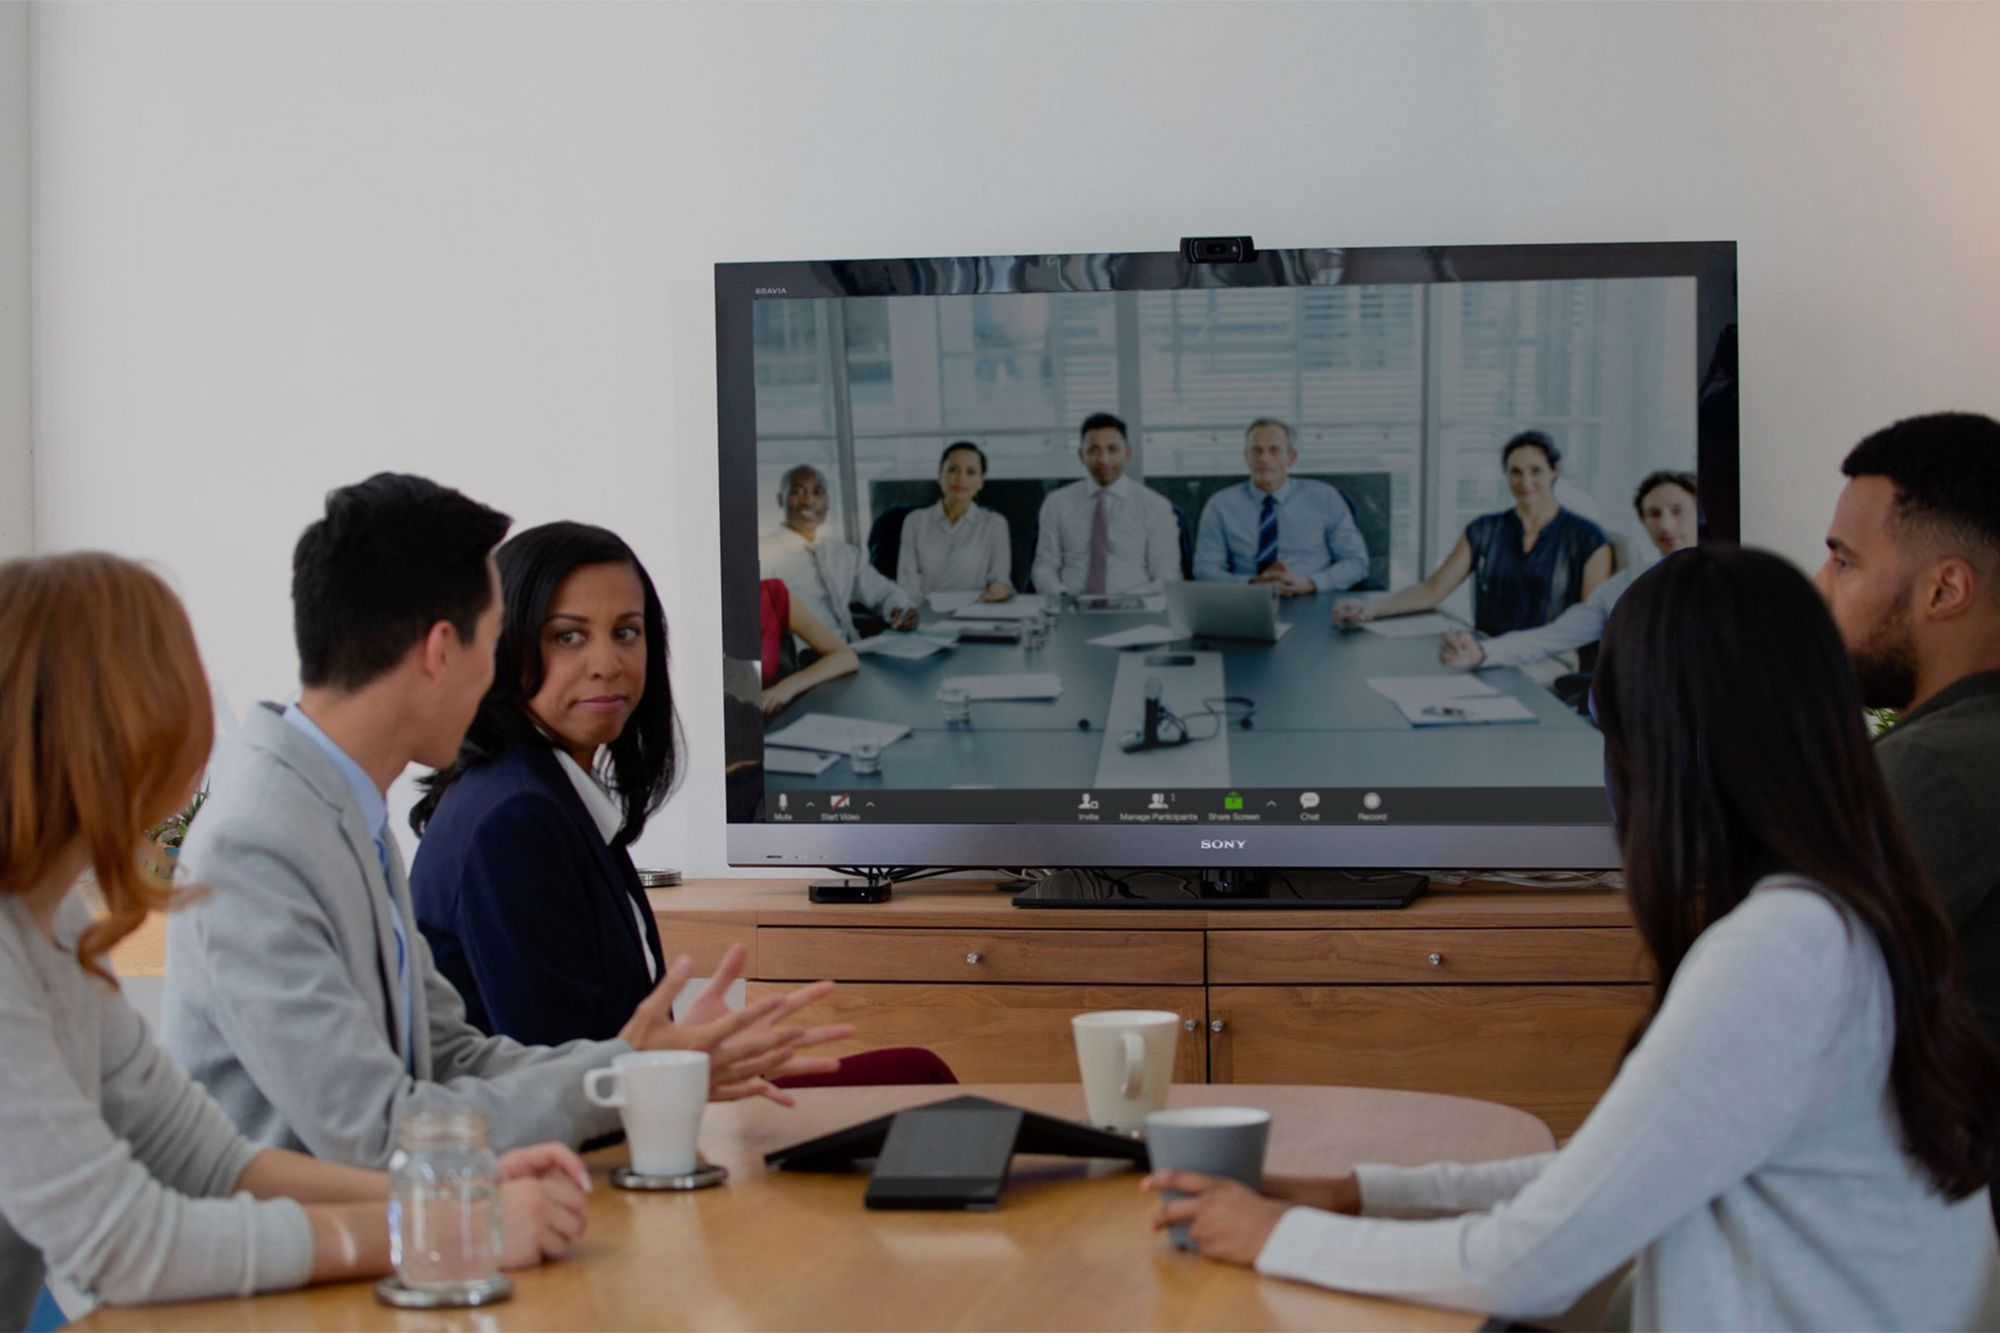 How to Make Your Video Meetings More Productive